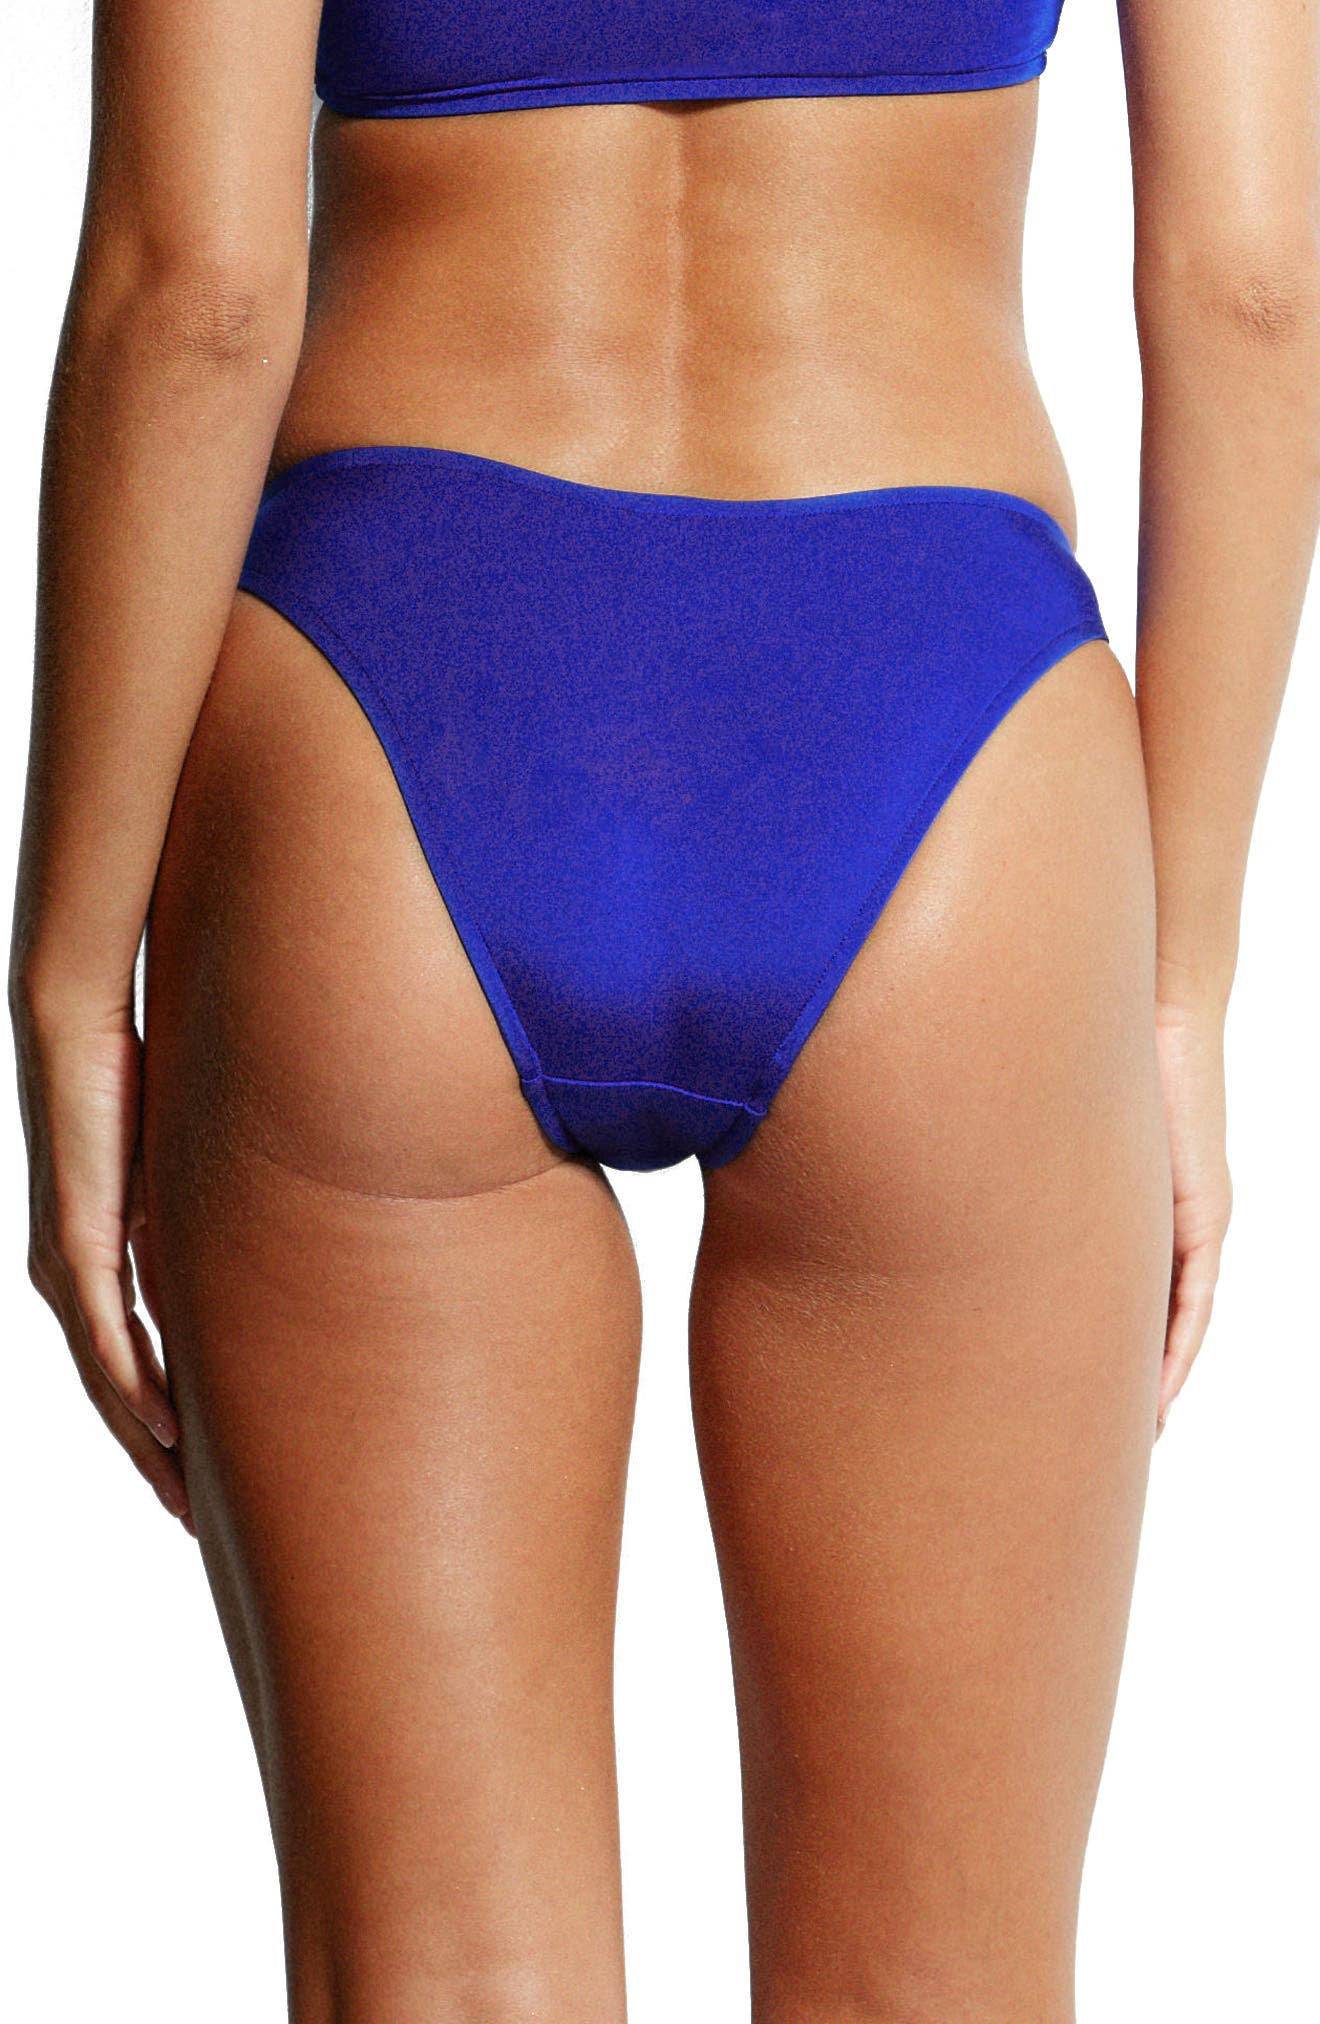 Pheonix High Leg Bikini Bottoms,                             Alternate thumbnail 2, color,                             BLUE RAY